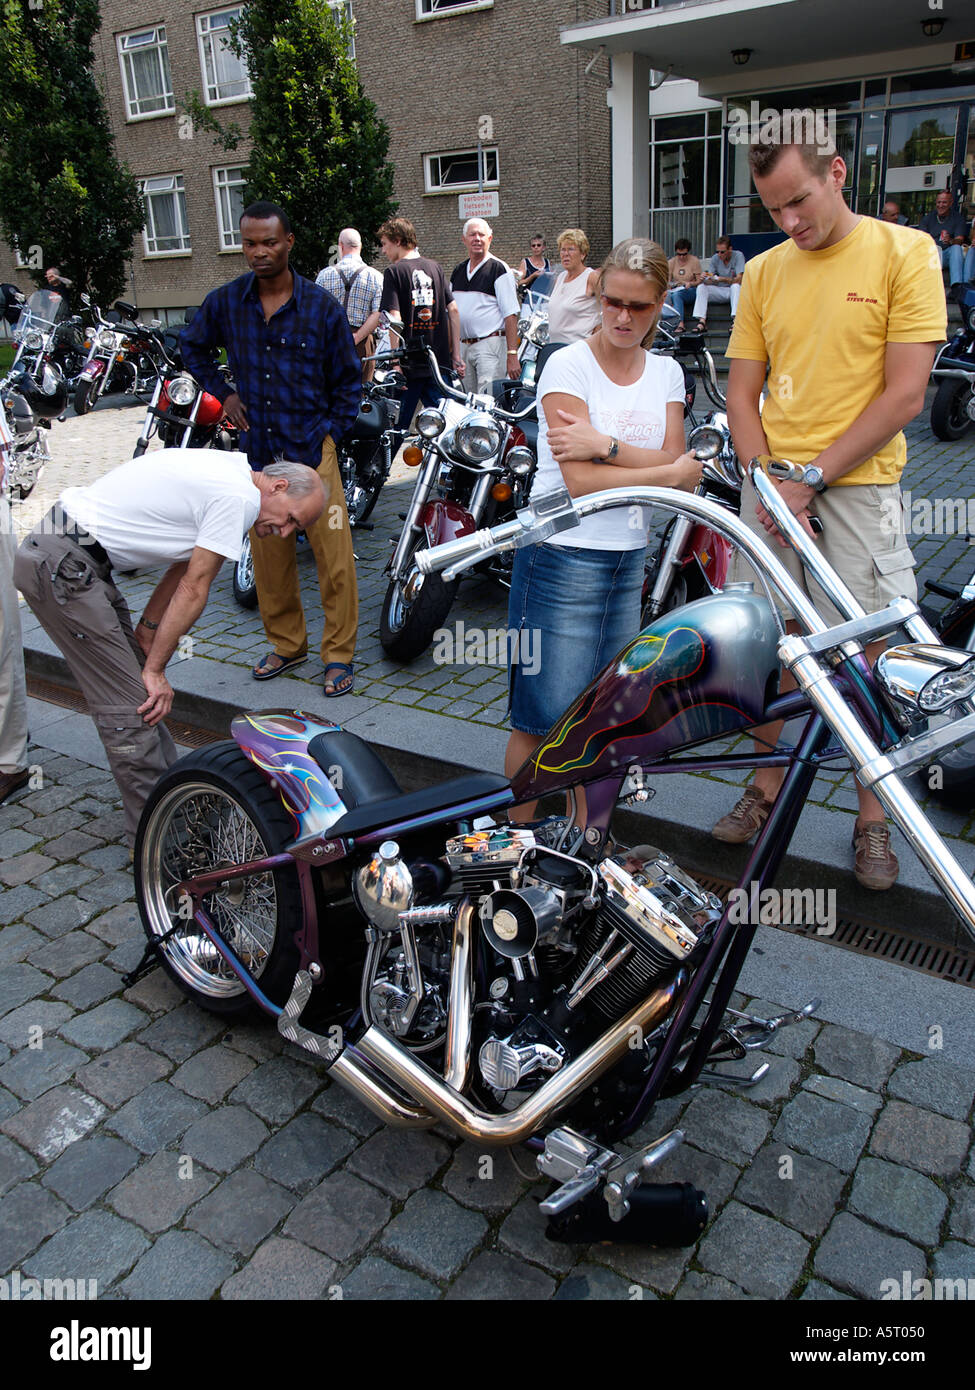 People admiring a custom built Harley Davidson chopper with a very radical design - Stock Image